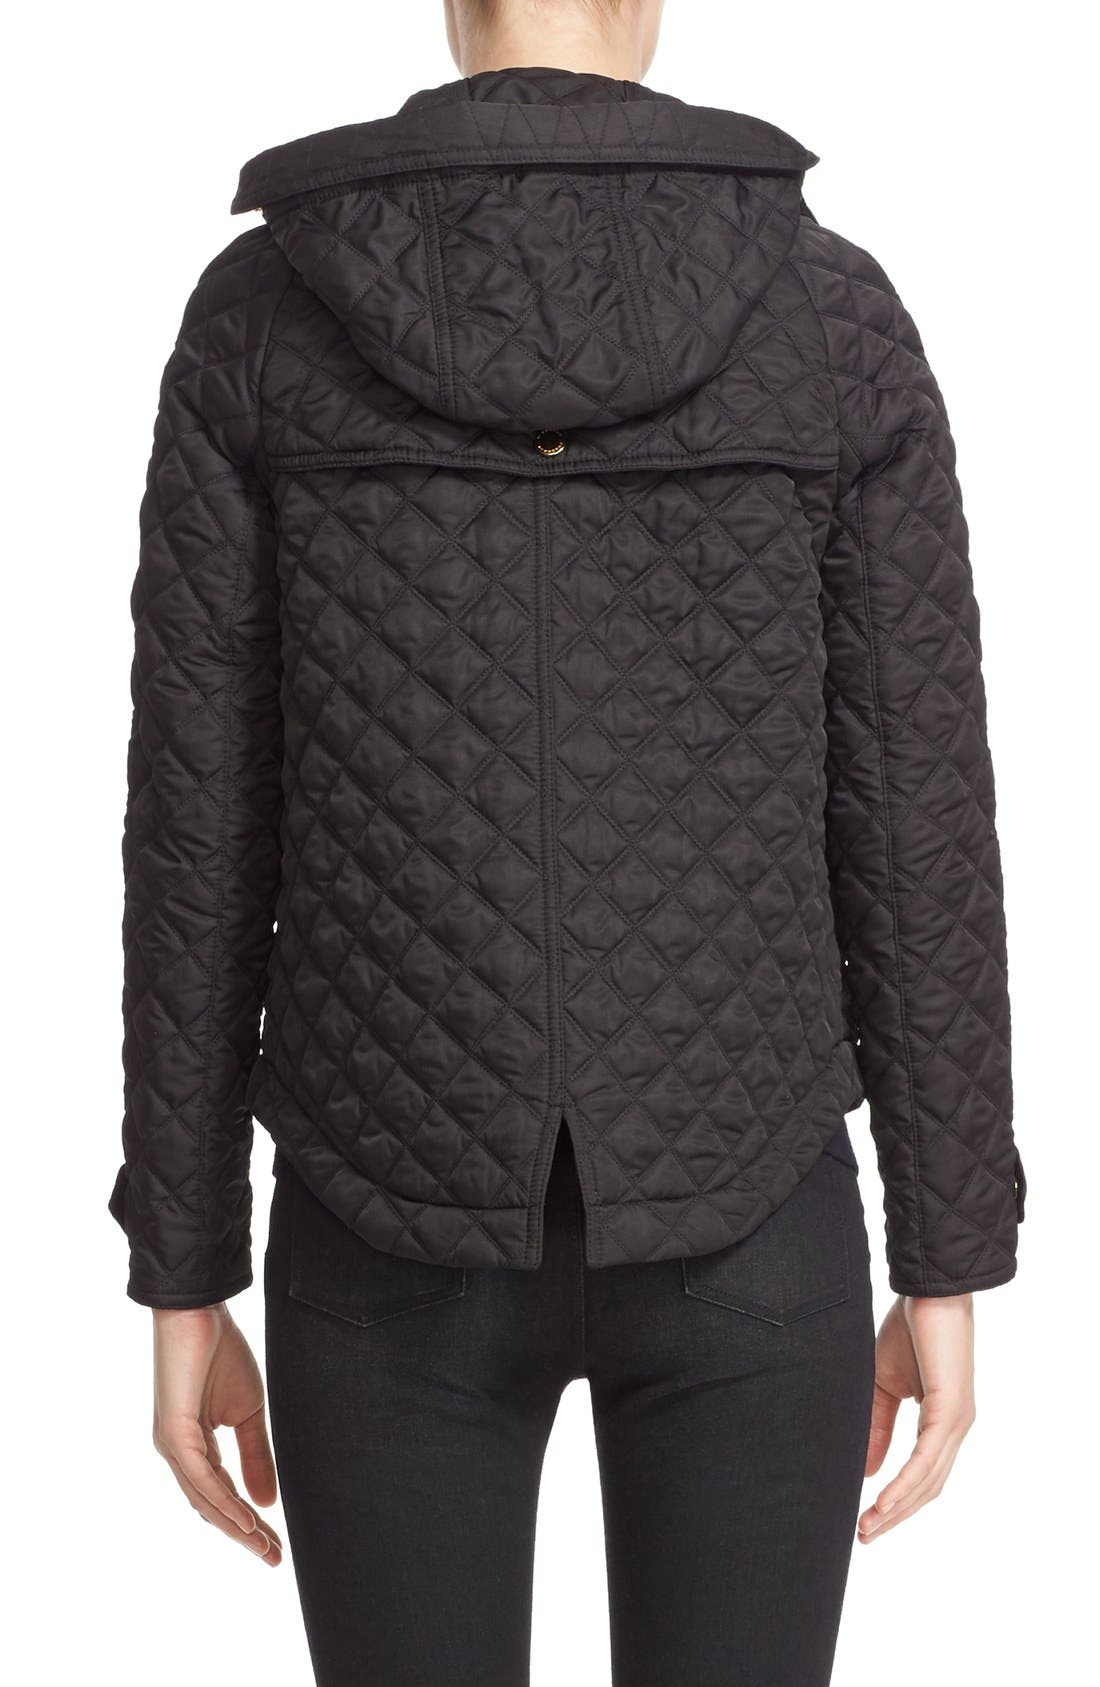 BURBERRY BRIT, 'Leightonbury' Quilted Hooded Jacket, Alternate thumbnail 4, color, 001